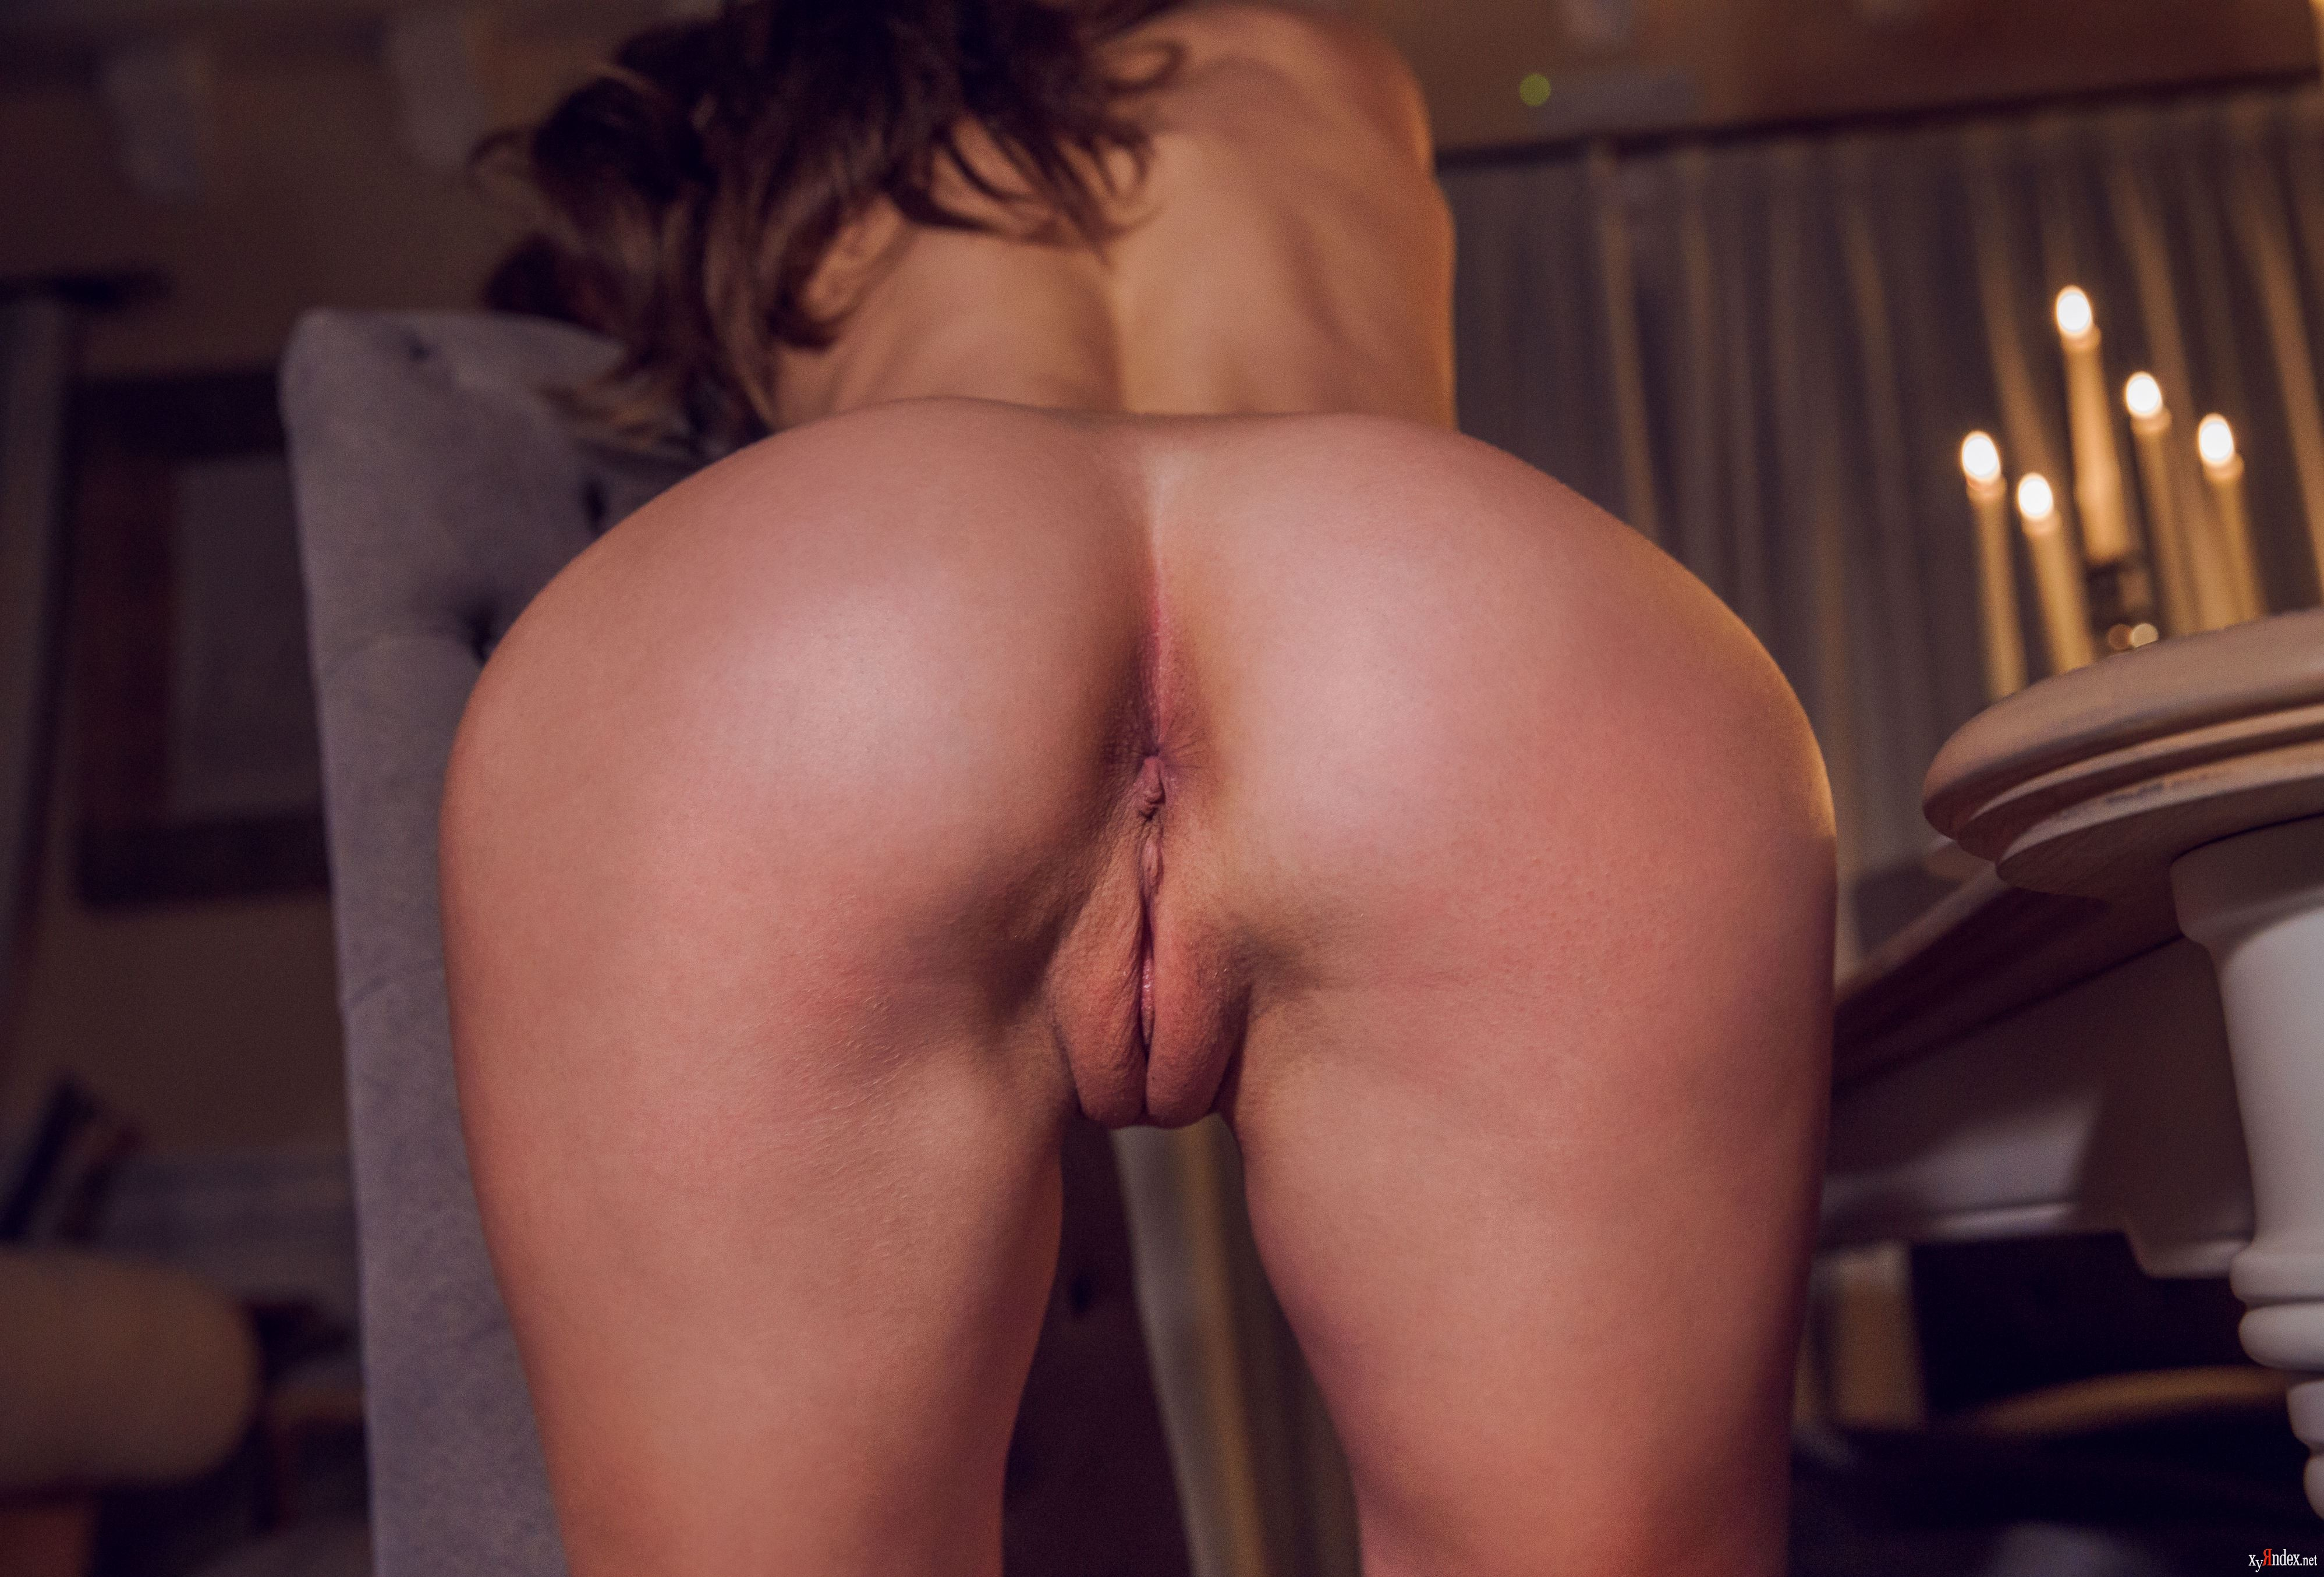 August ames, darcie dolce